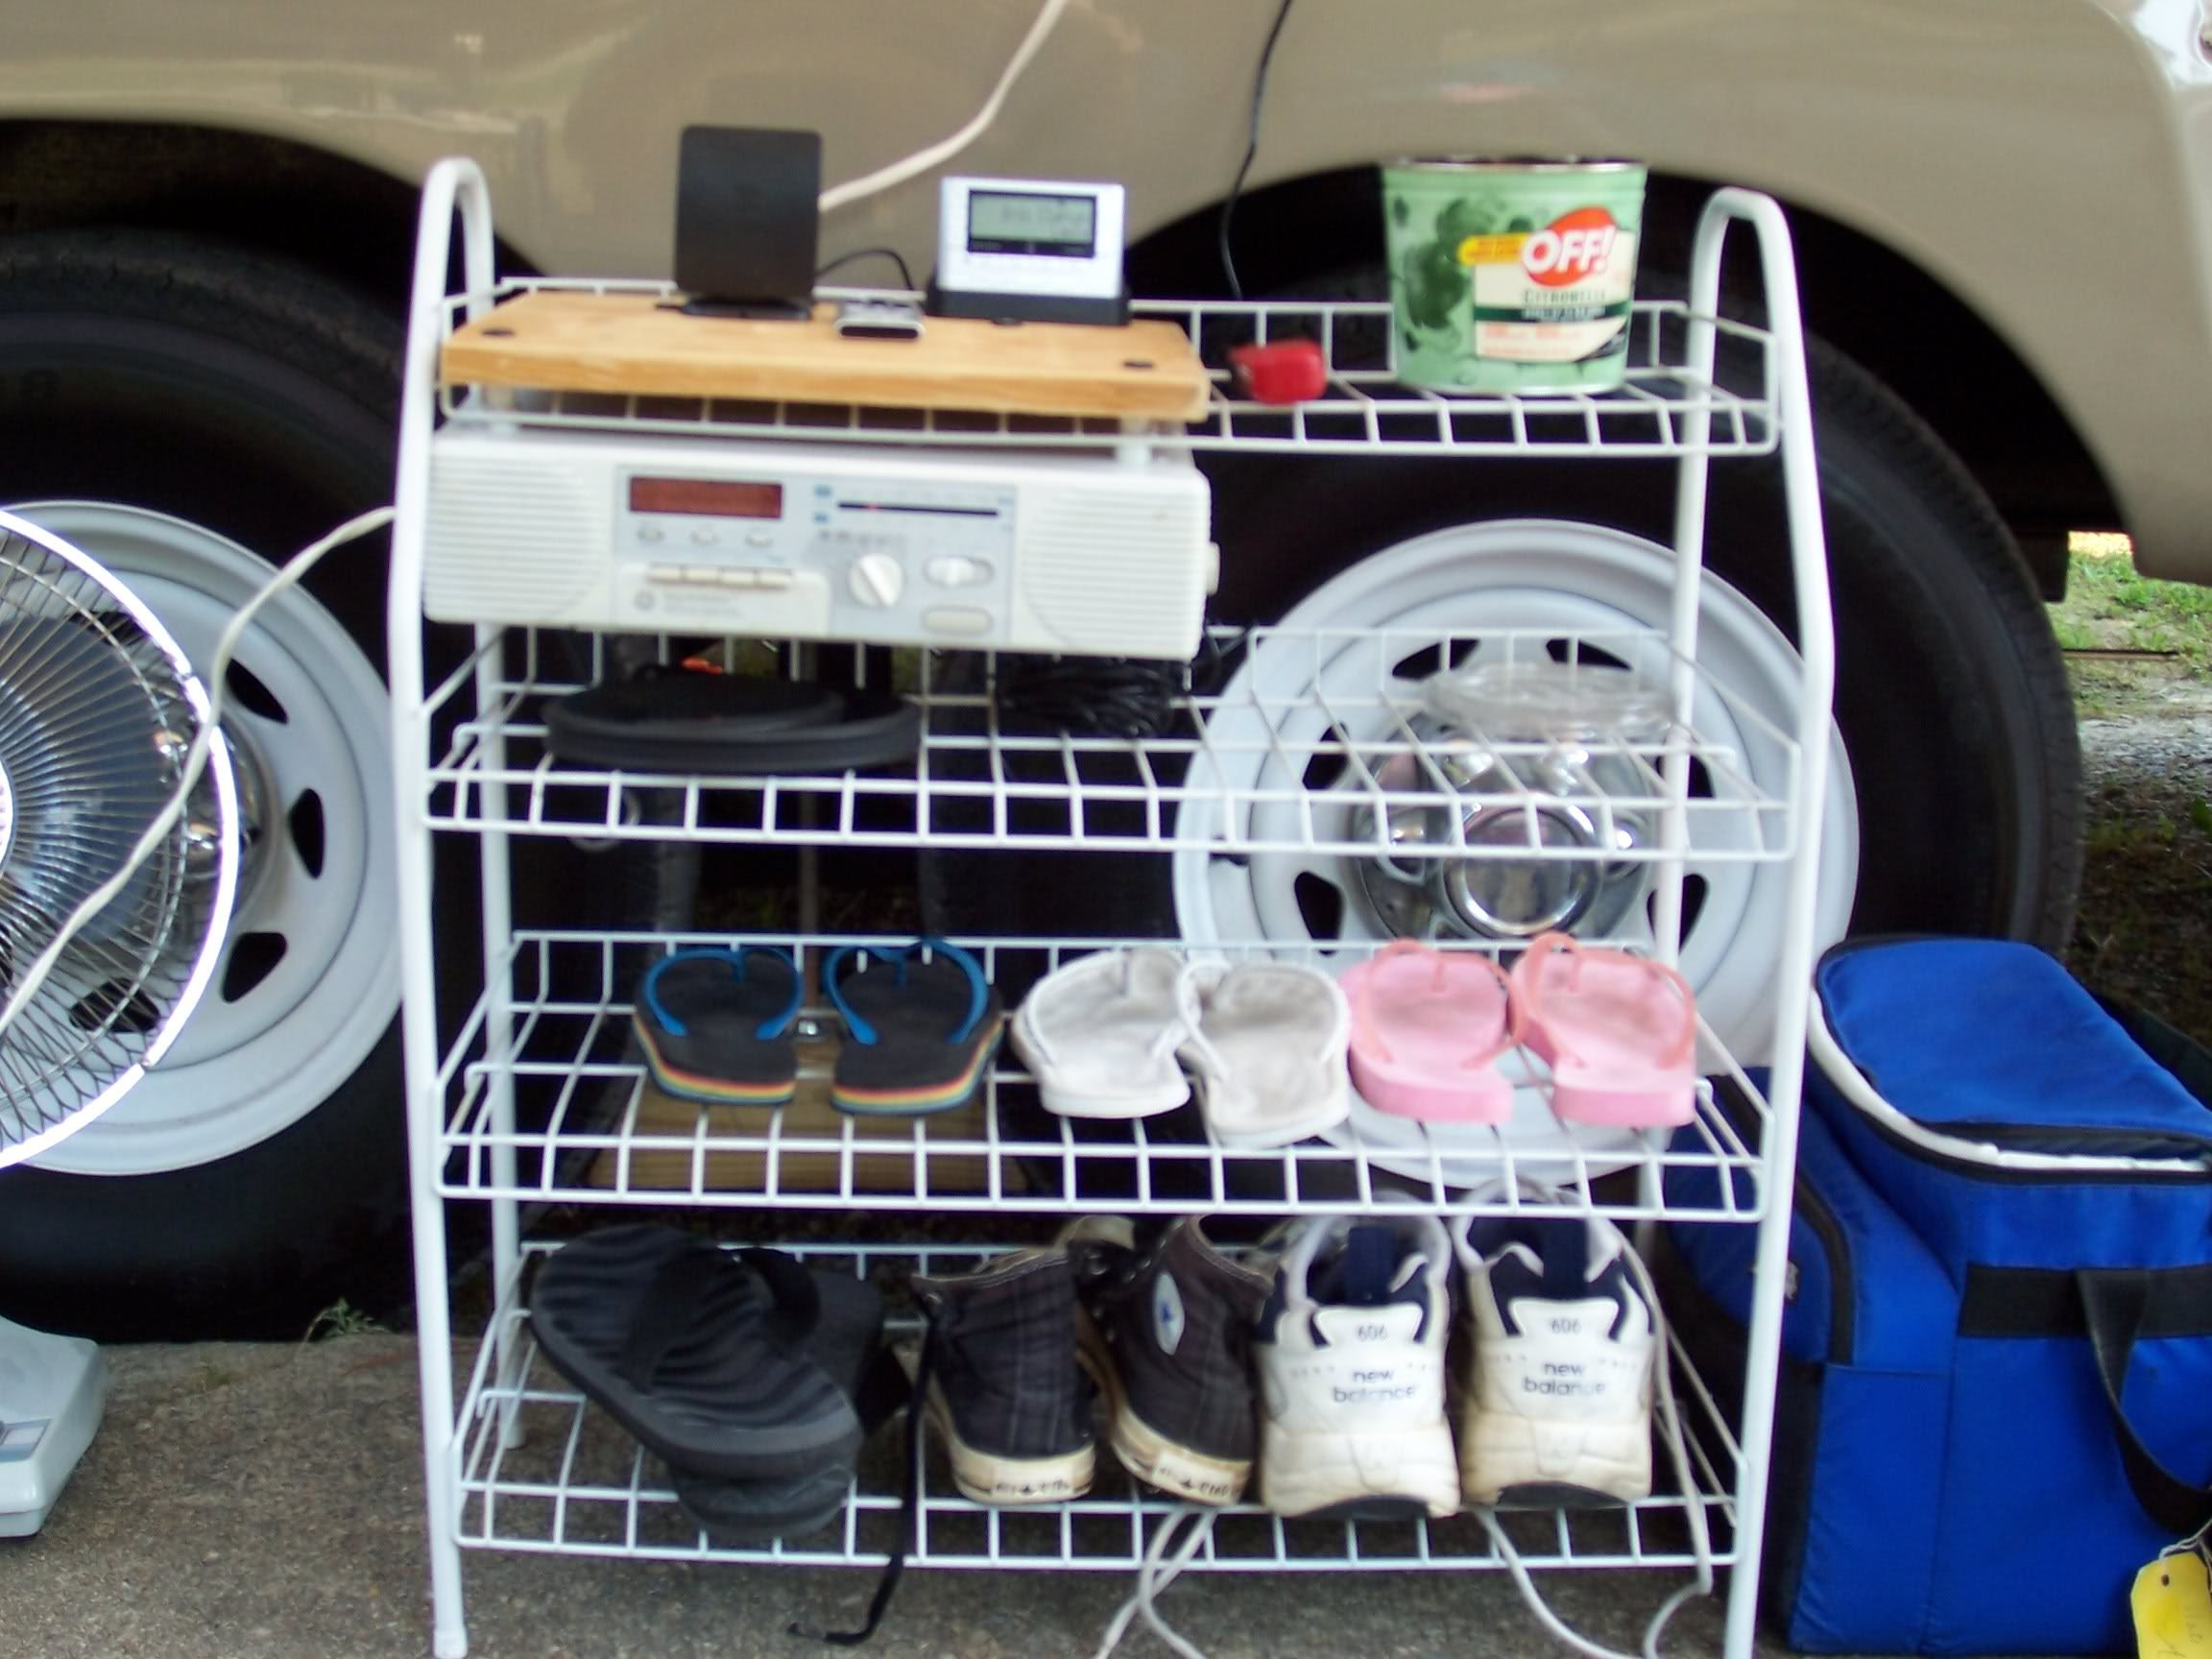 Pin By Megan Weisser On Camping Entertainment Center Outdoor Entertaining Outdoor